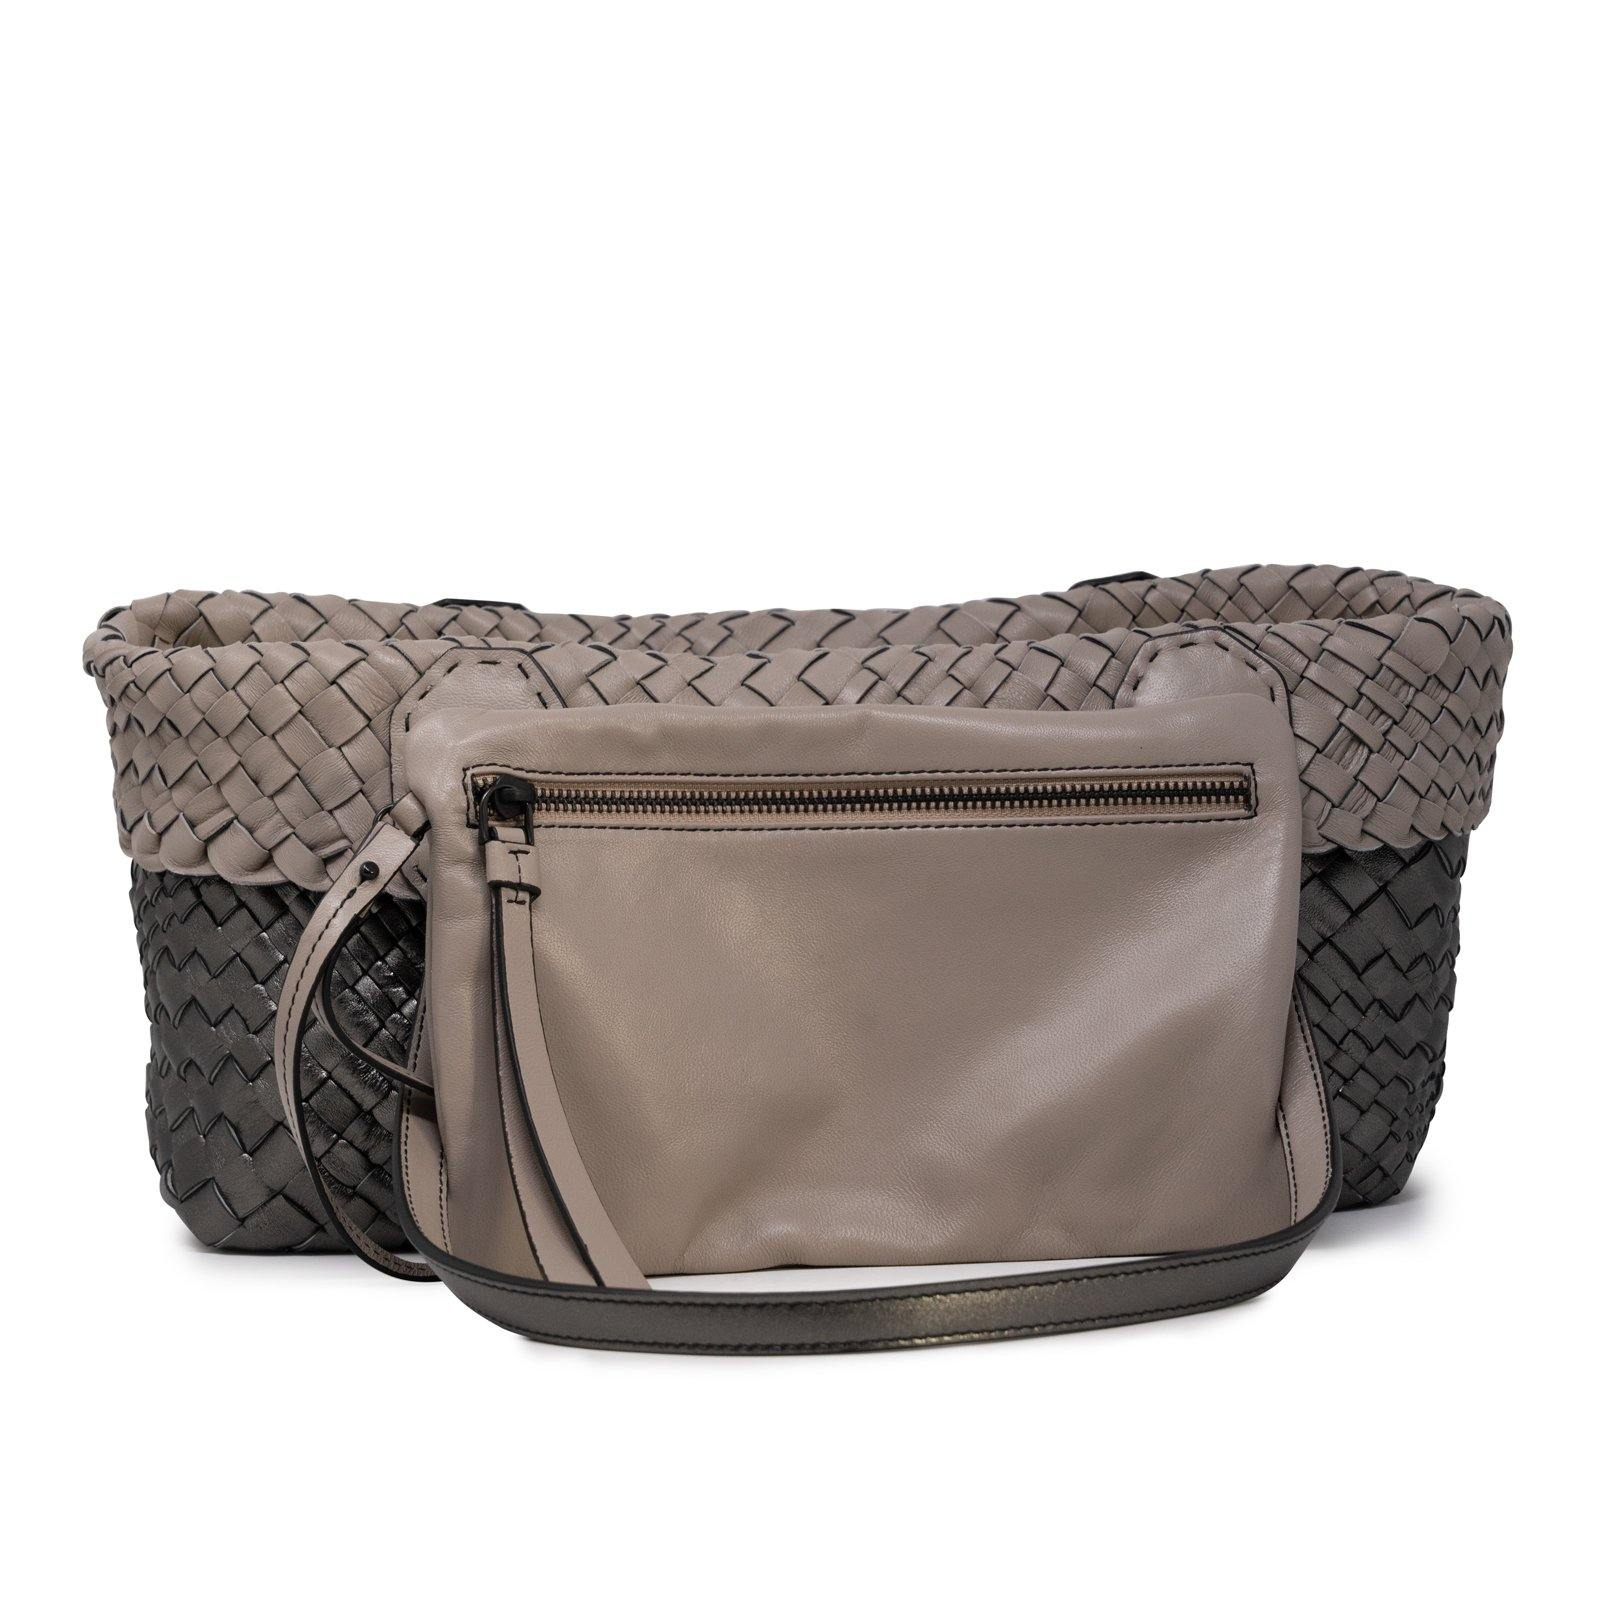 Women Leather Intreccio Optical Leather Bag in Putter and Taupe